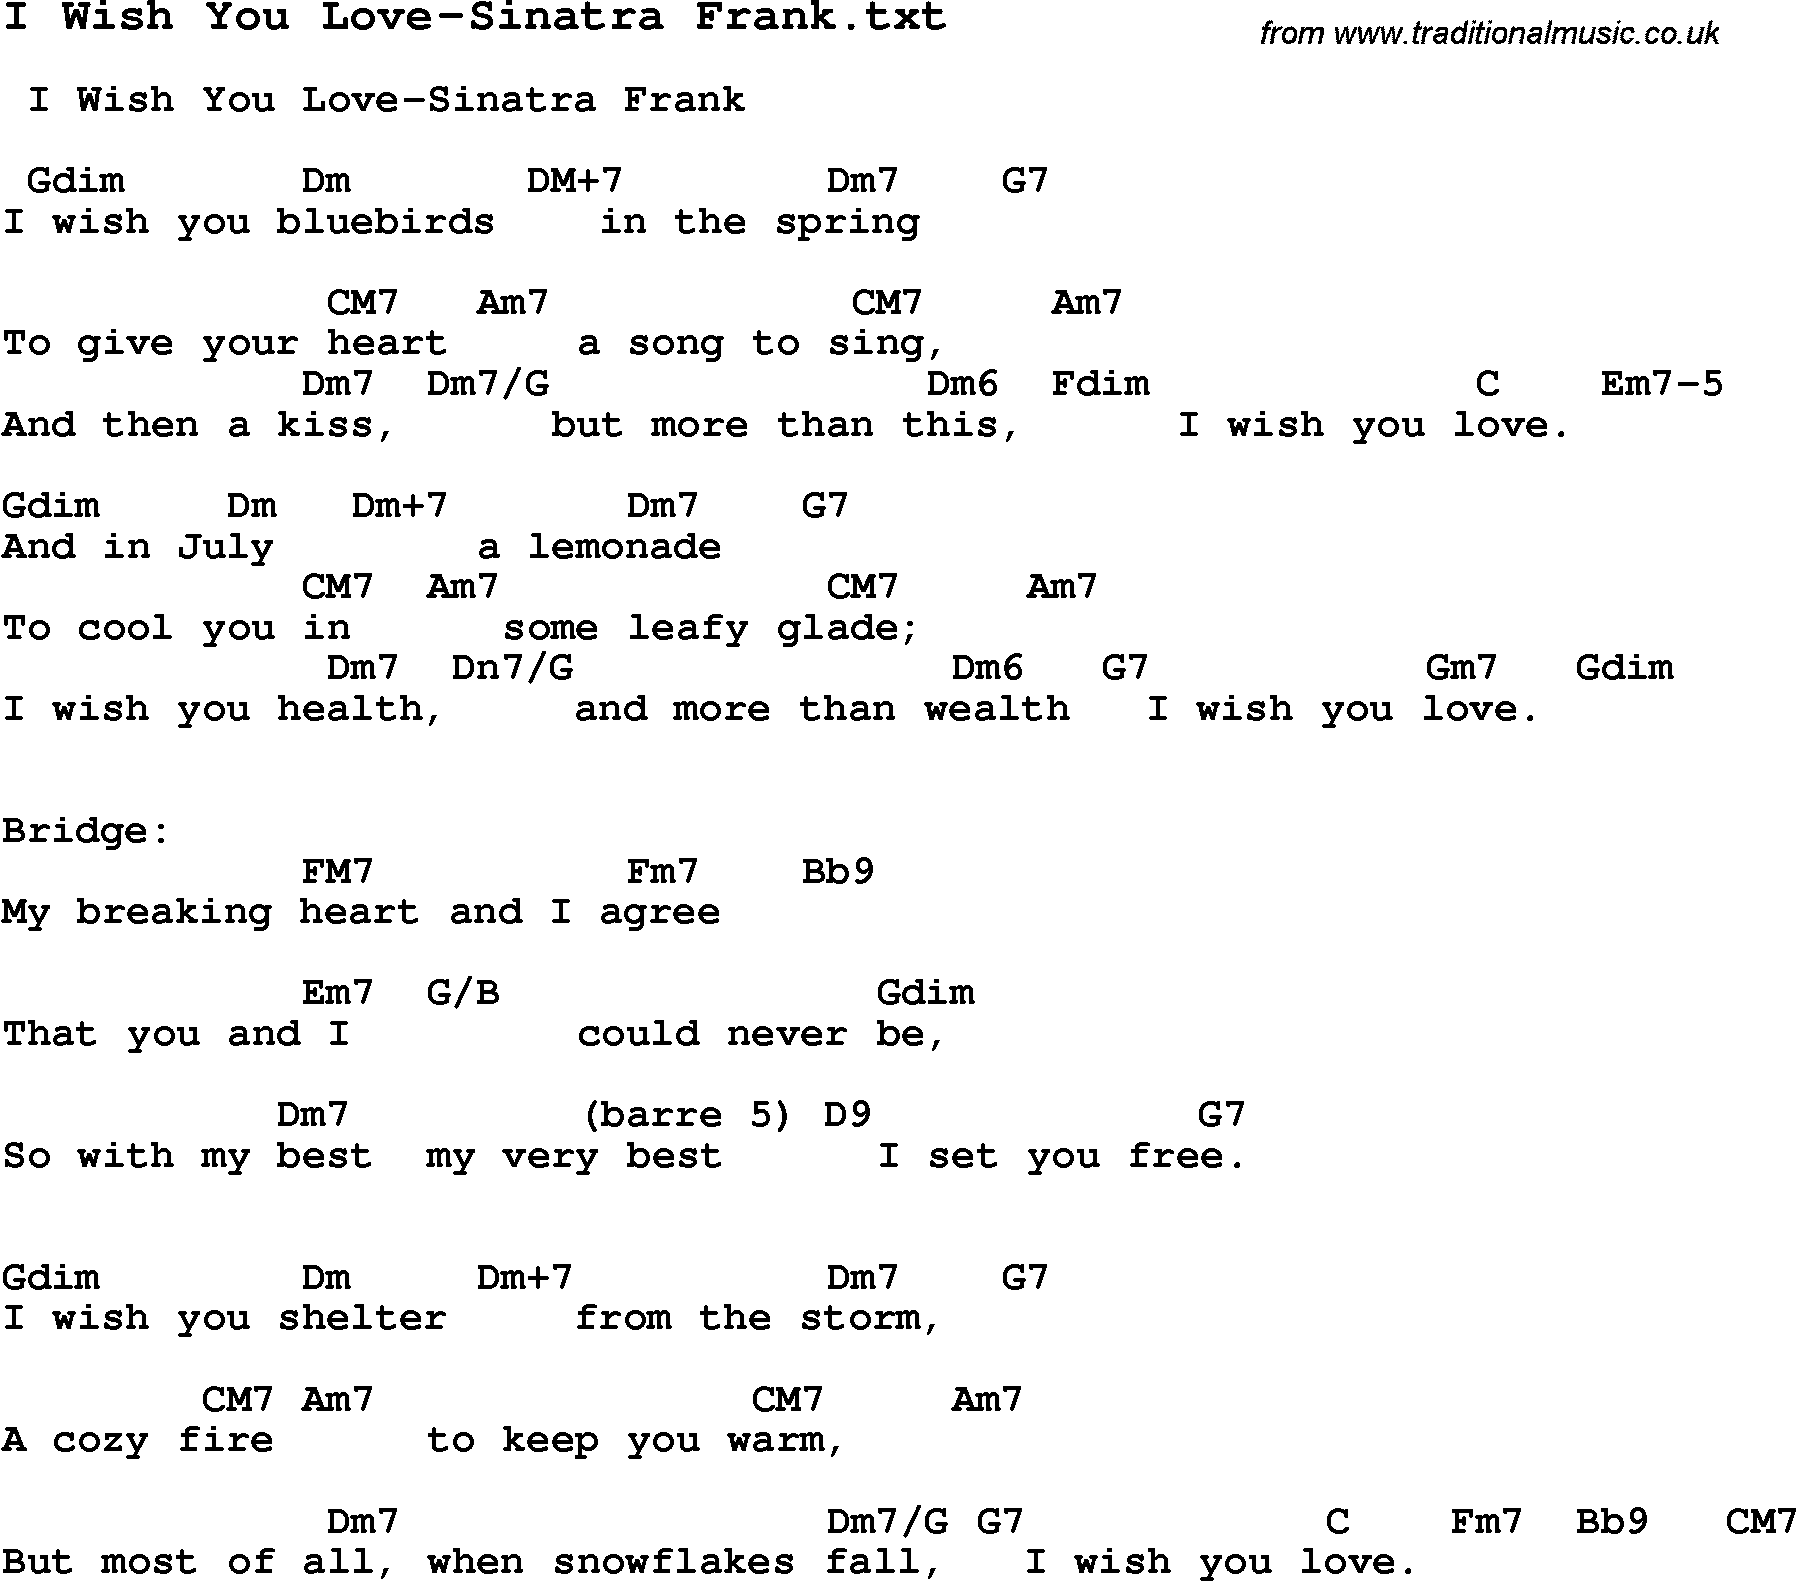 Jazz Song I Wish You Love Sinatra Frank With Chords Tabs And